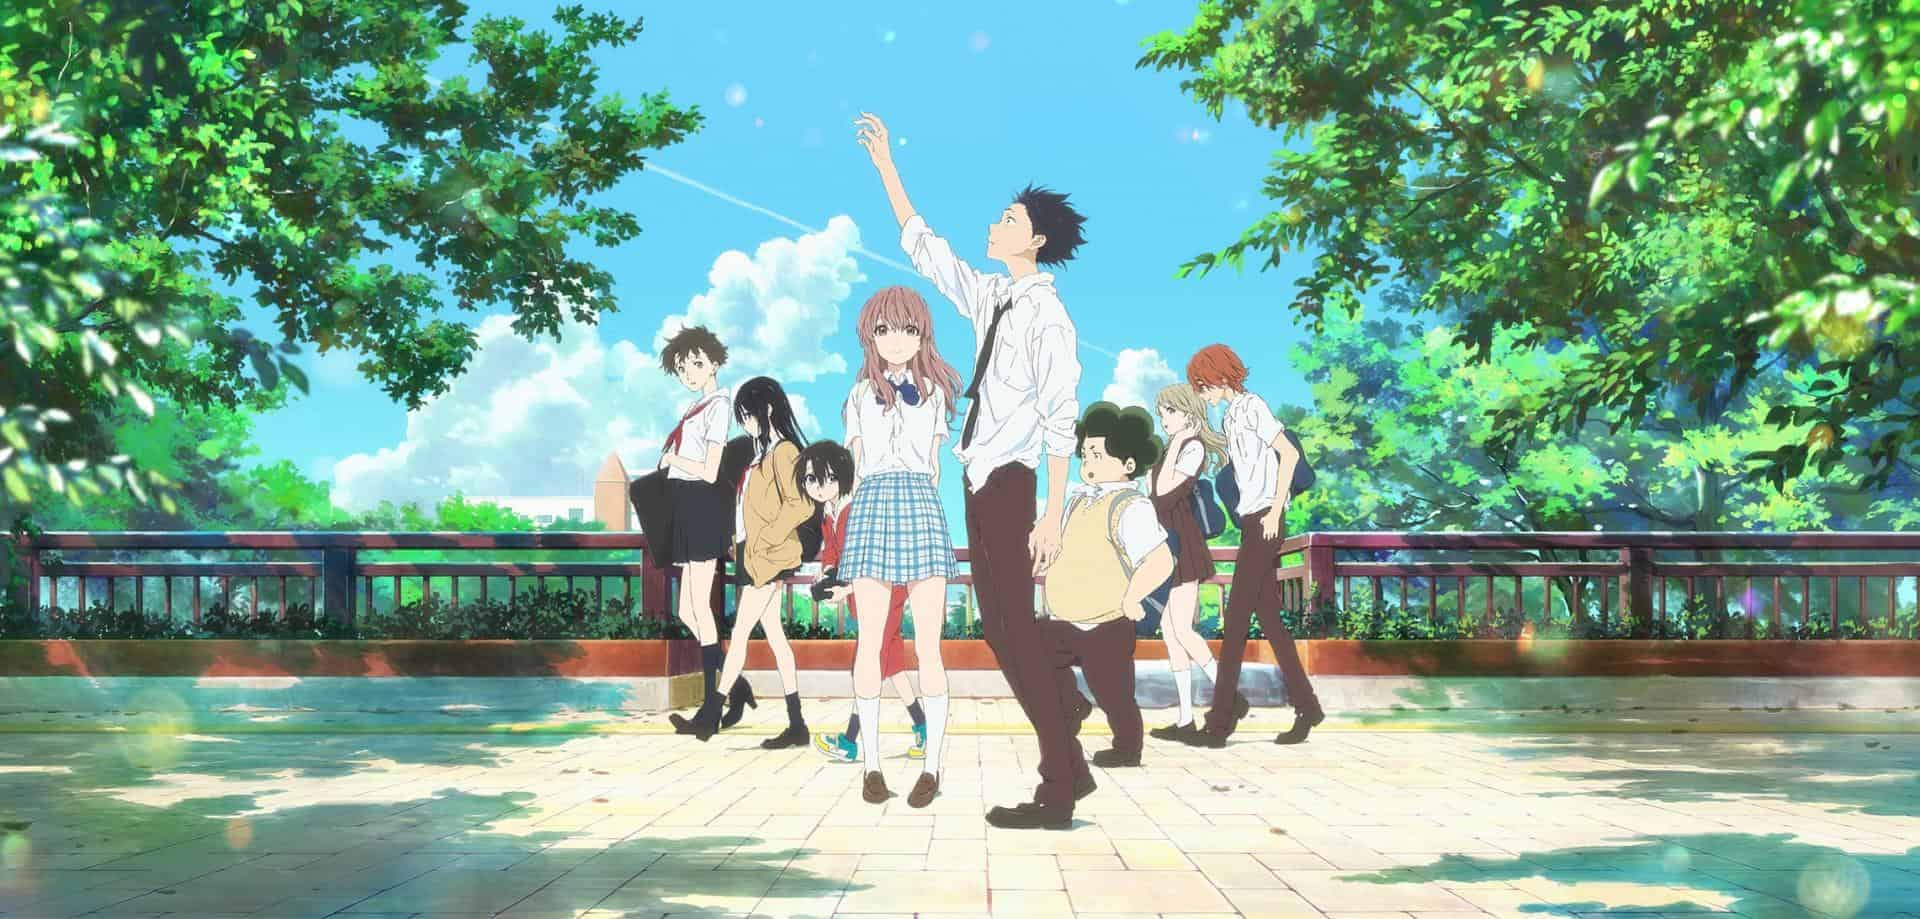 Top 10 Beautiful Romance Anime Movies You Should Not Miss